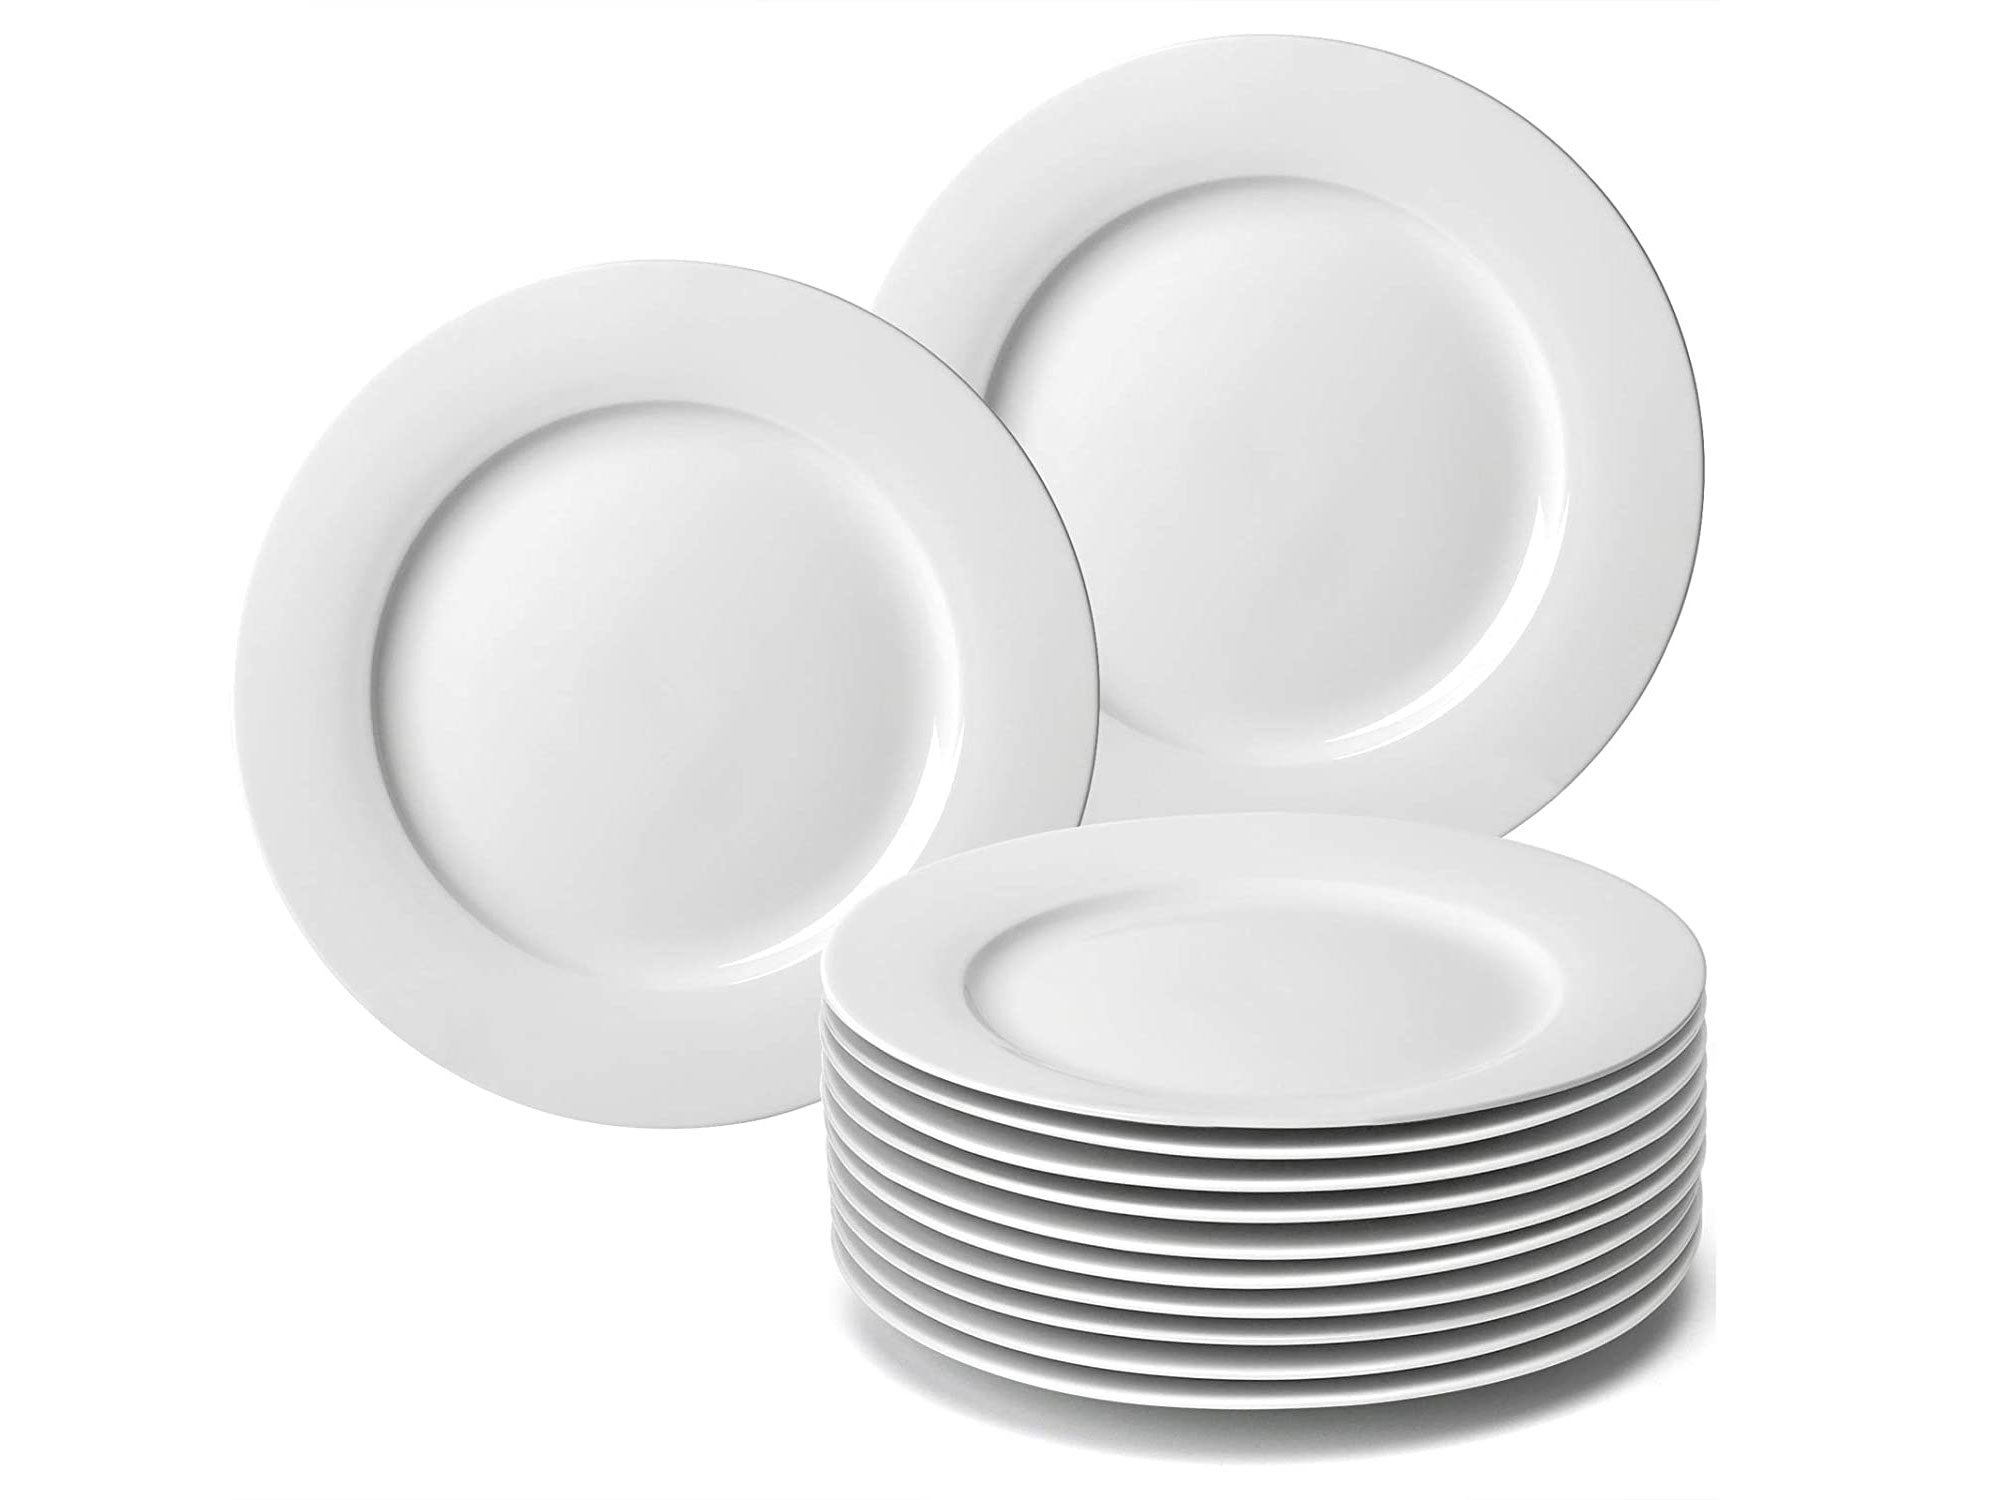 amHomel 12-Piece White Porcelain Dinner Plate Set, 10.5inch High Temperature Natural Dinnerware Set for Restaurant,Kitchen and Family Party Use